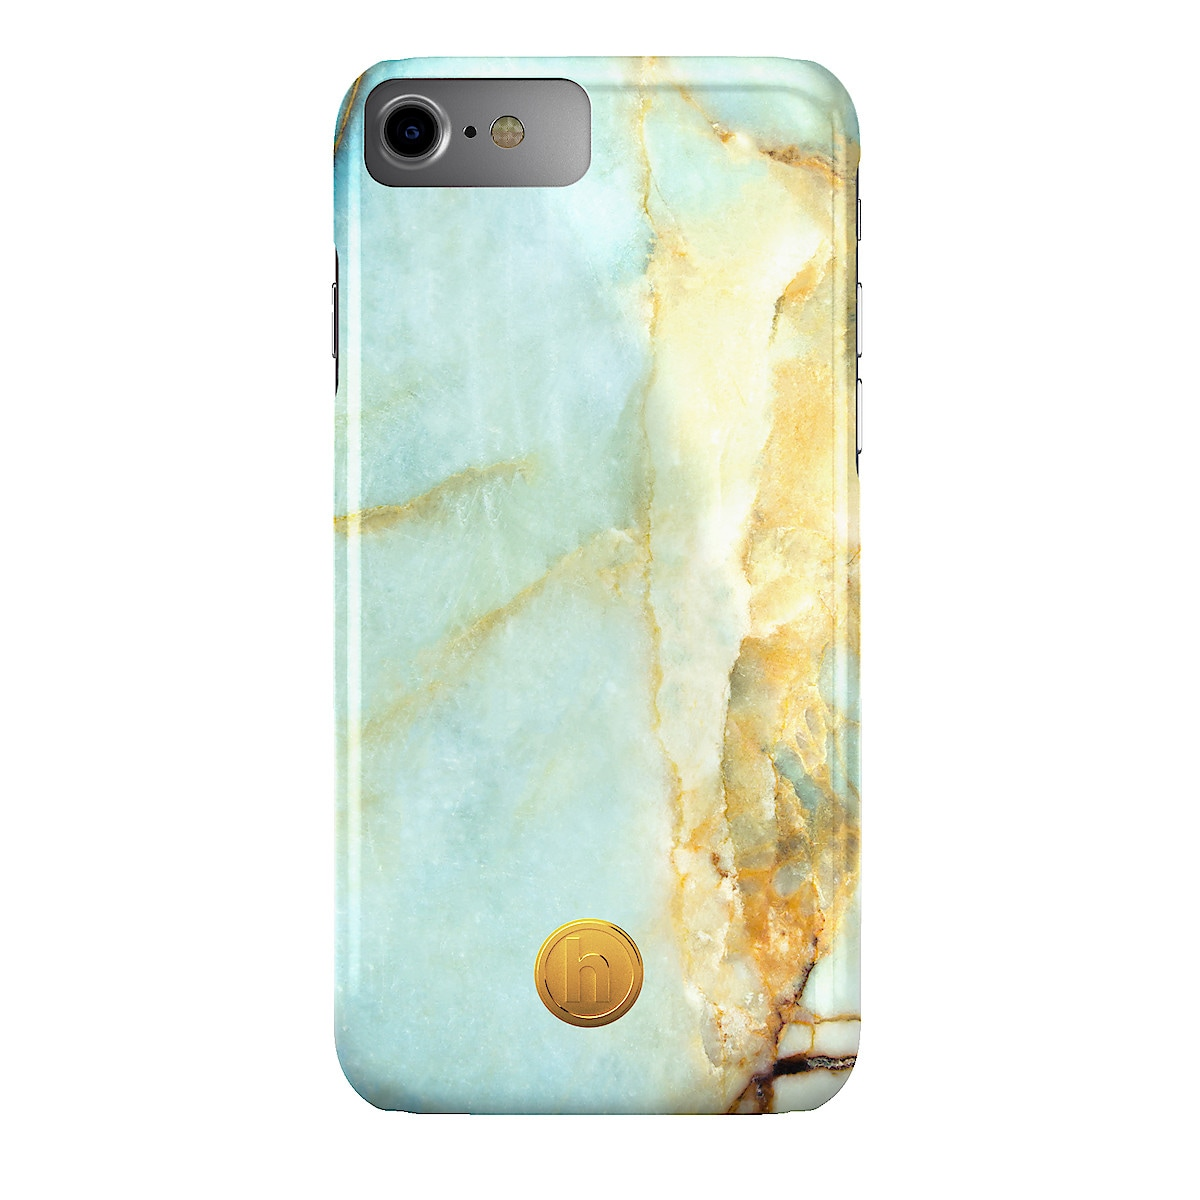 Holdit Style Case for iPhone 6/6s/7/8